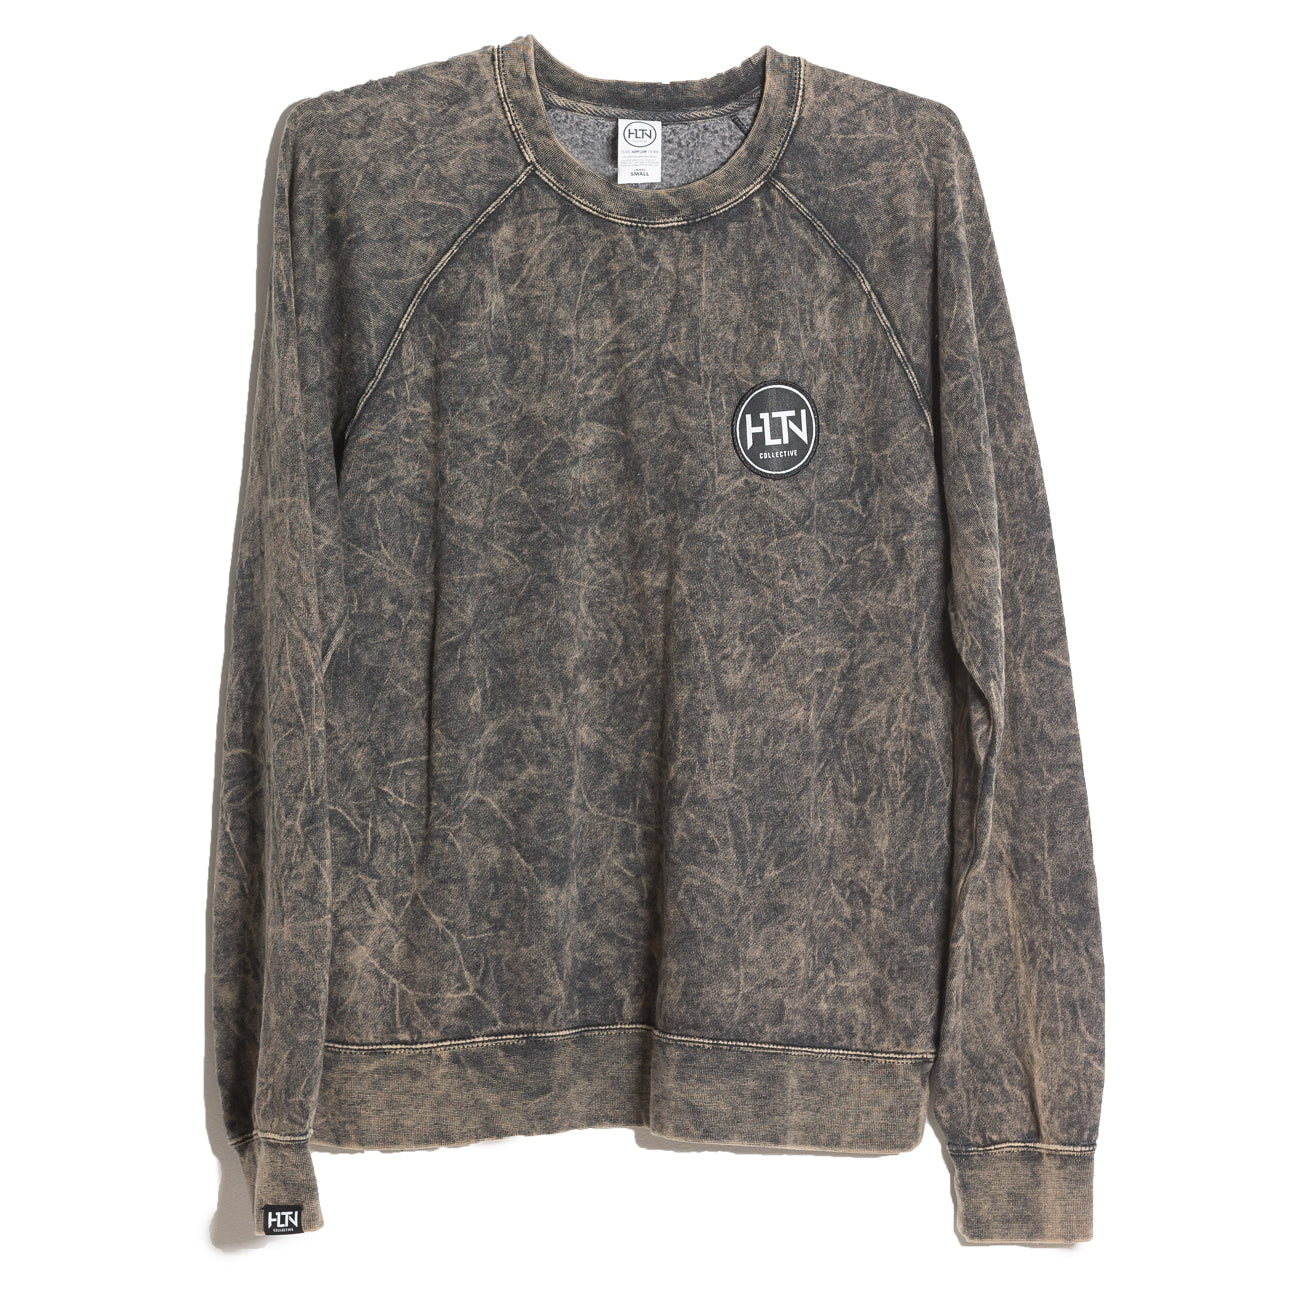 BLACKSAND MINERAL WASH PULLOVER